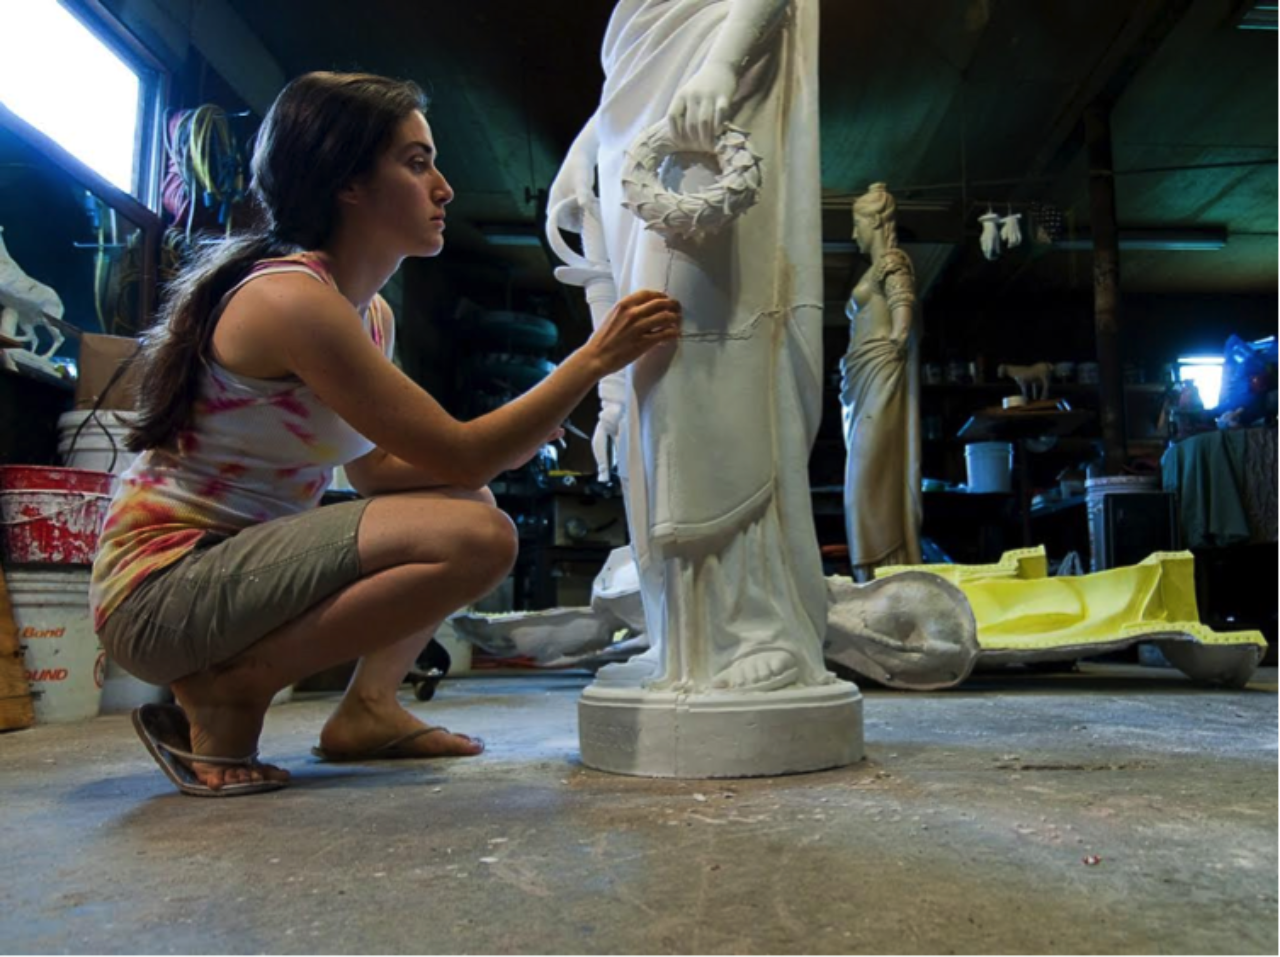 Young Members Task Force participant Emily Bedard, who won a 2015 Stanford White Award in the Craftsmanship and Artisanship category for Statue of Liberty for Seaside Monument